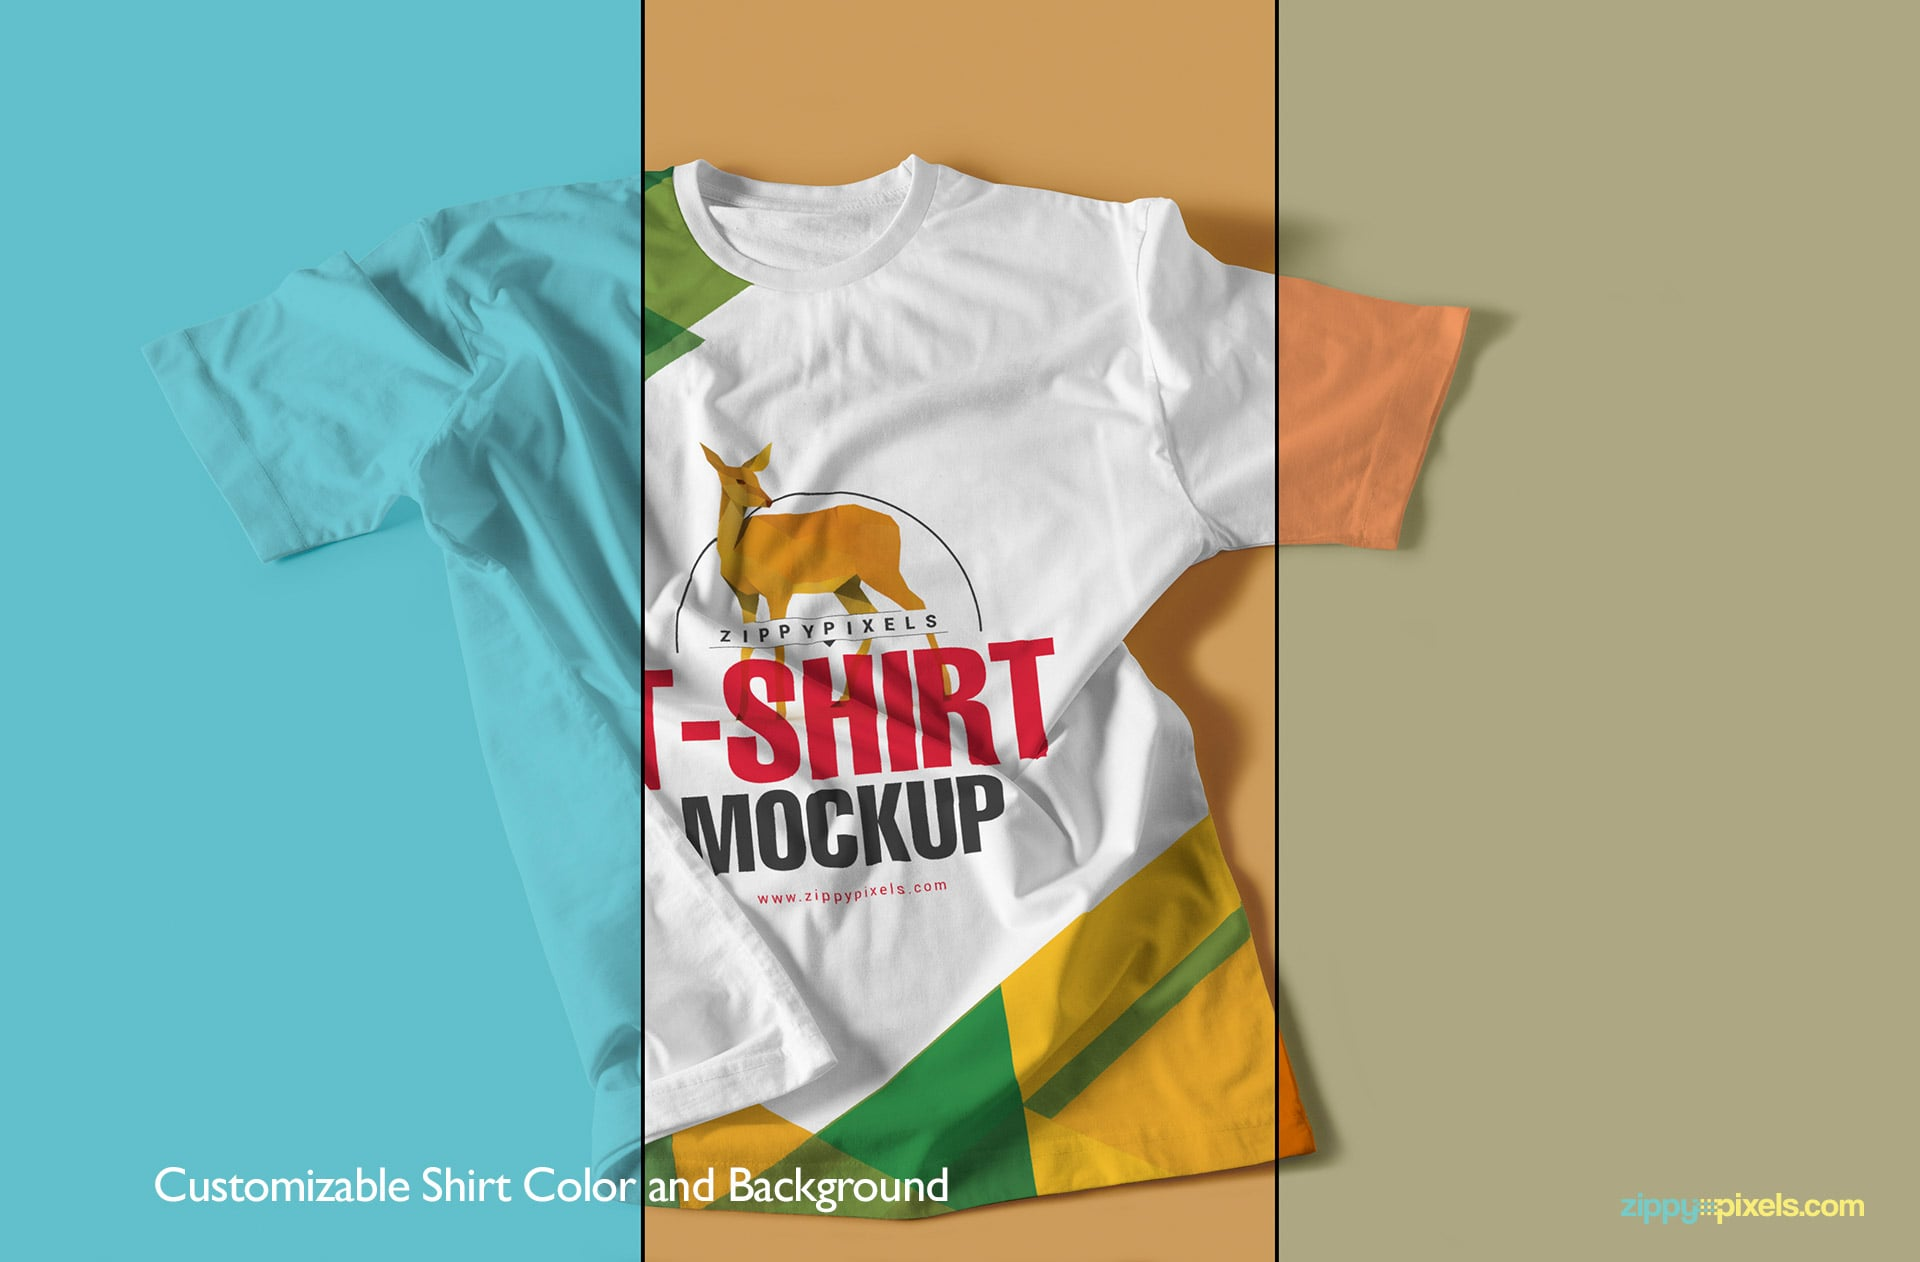 Tee shirts mockups with multiple customization options